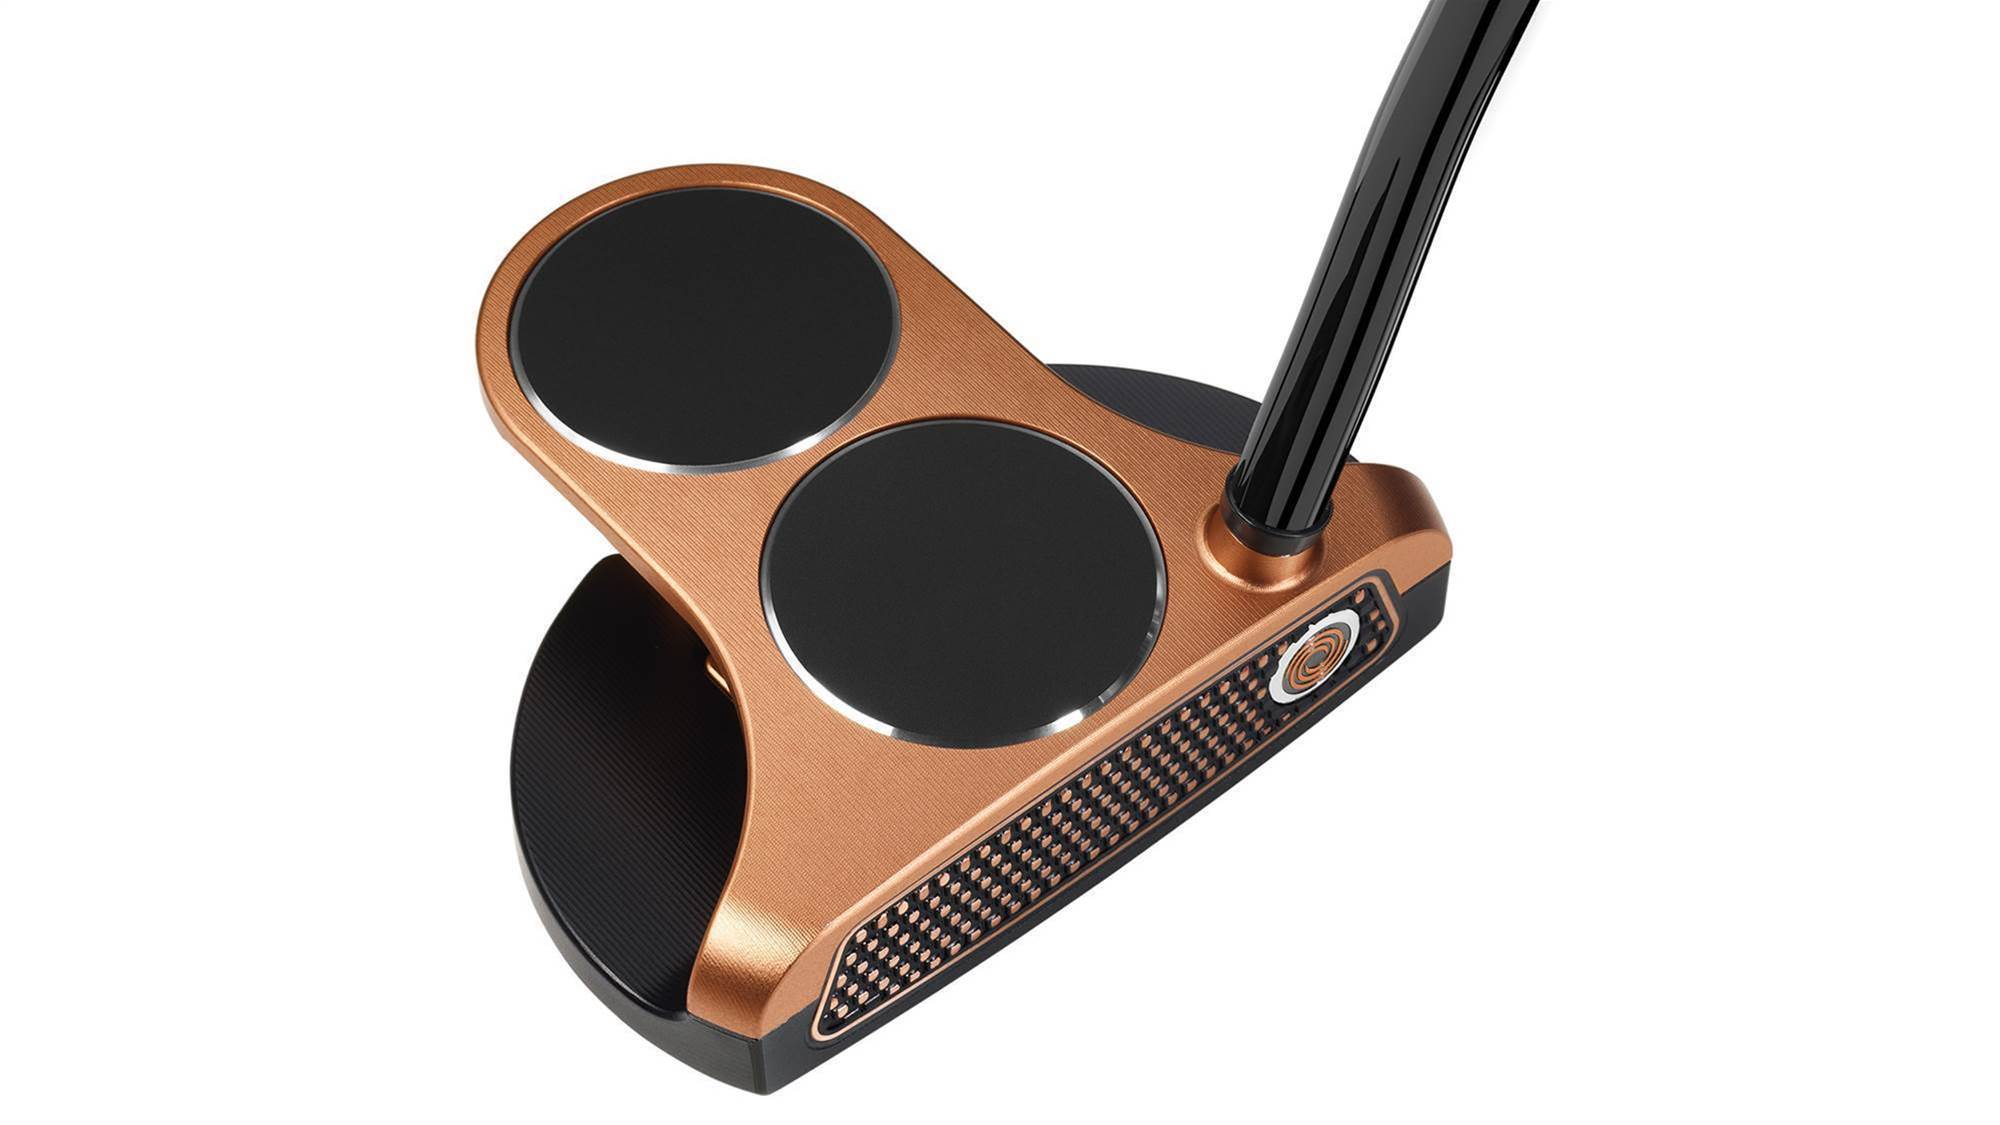 New Odyssey putter like no other